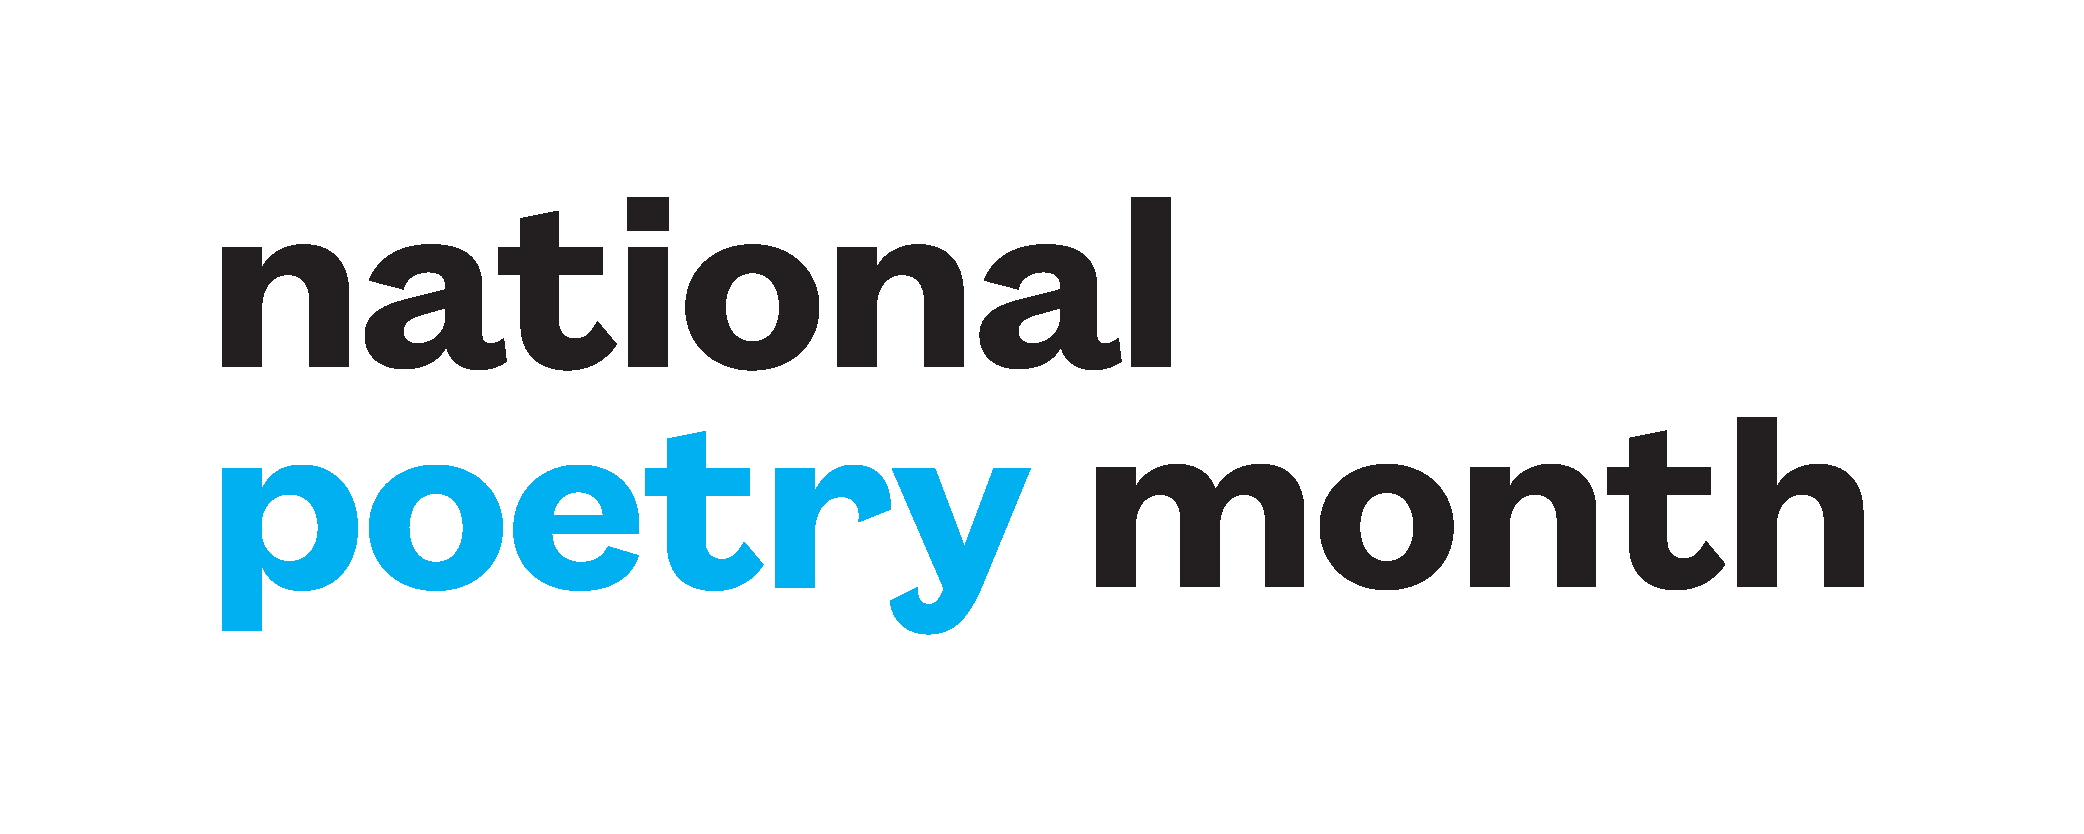 Image result for national poetry month 2018 banner